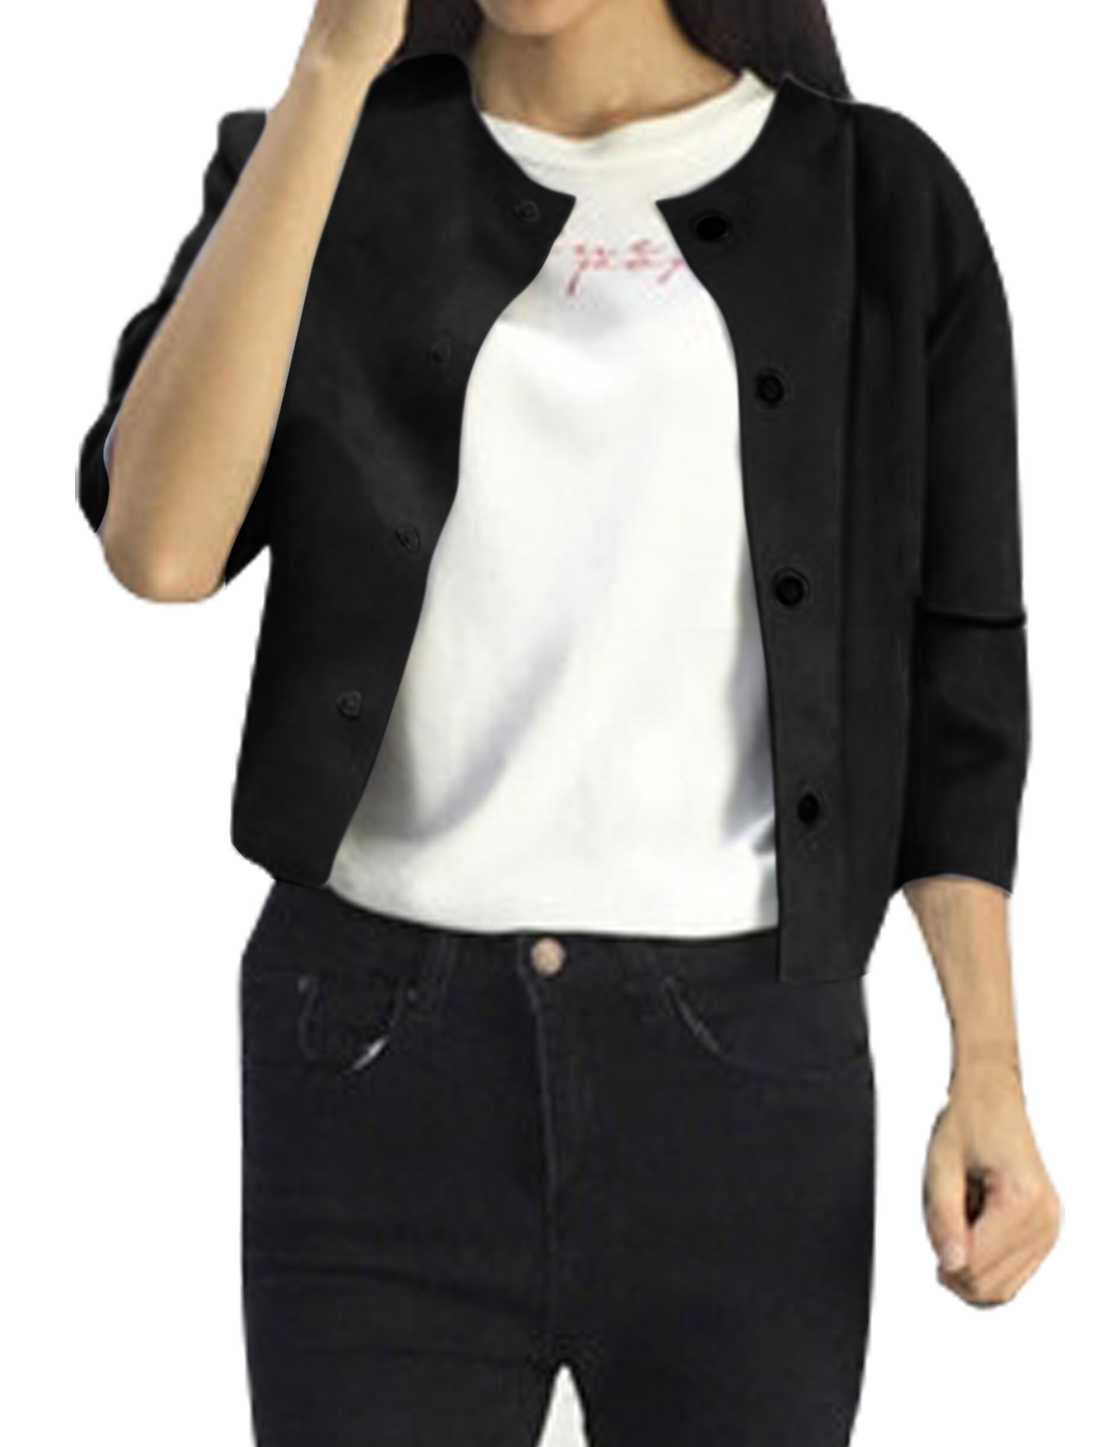 Lady Round Neck 3/4 Sleeves Single Breasted Casual Jacket Black XS